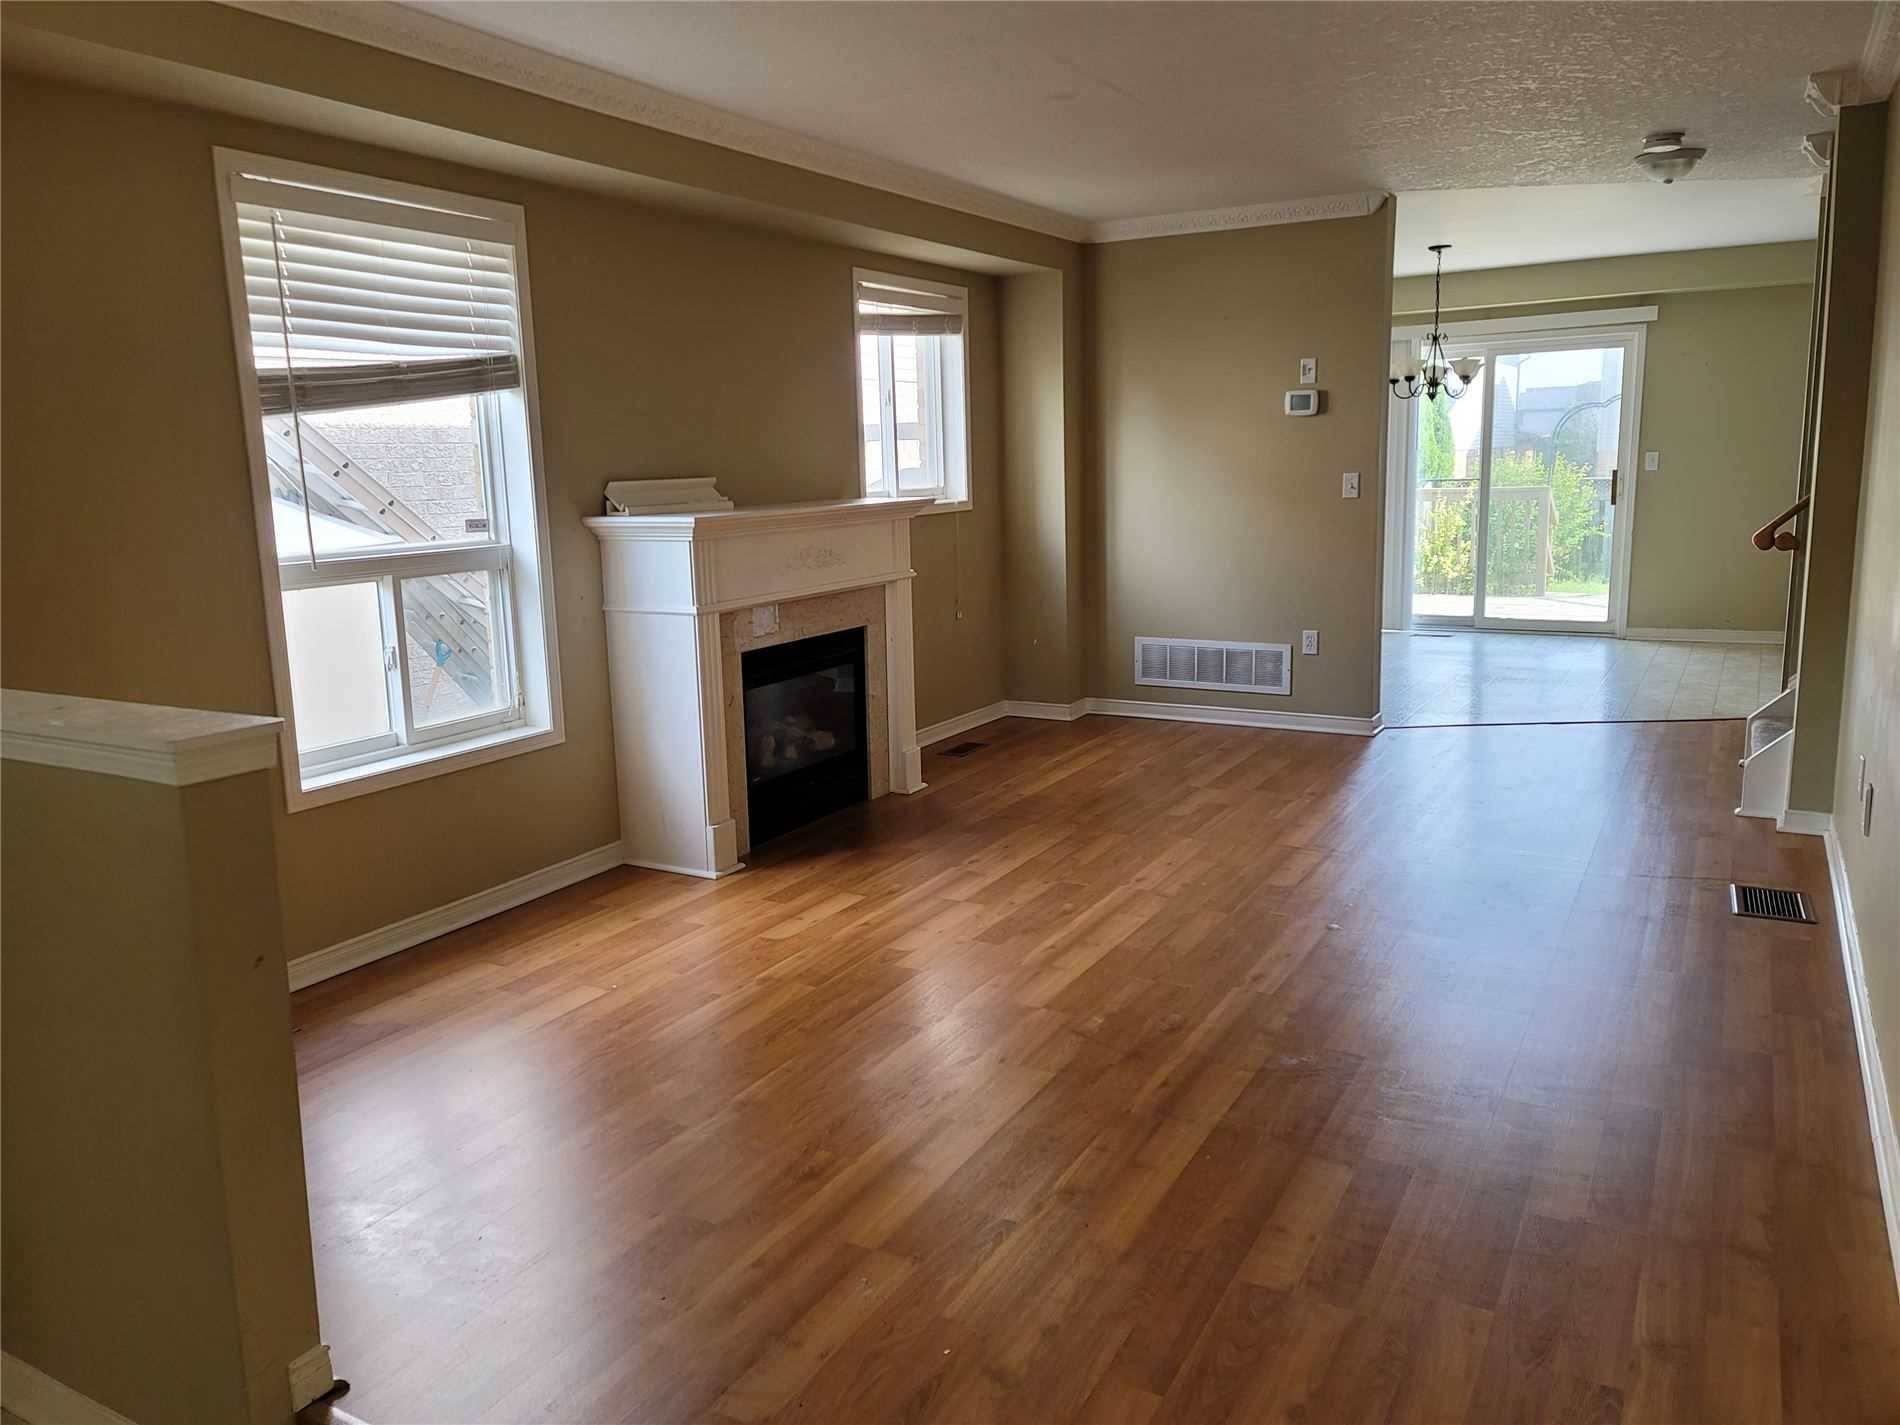 Detached house For Lease In Cambridge - 99 Flockhart Rd, Cambridge, Ontario, Canada N1P 1G3 , 3 Bedrooms Bedrooms, ,3 BathroomsBathrooms,Detached,For Lease,Flockhart